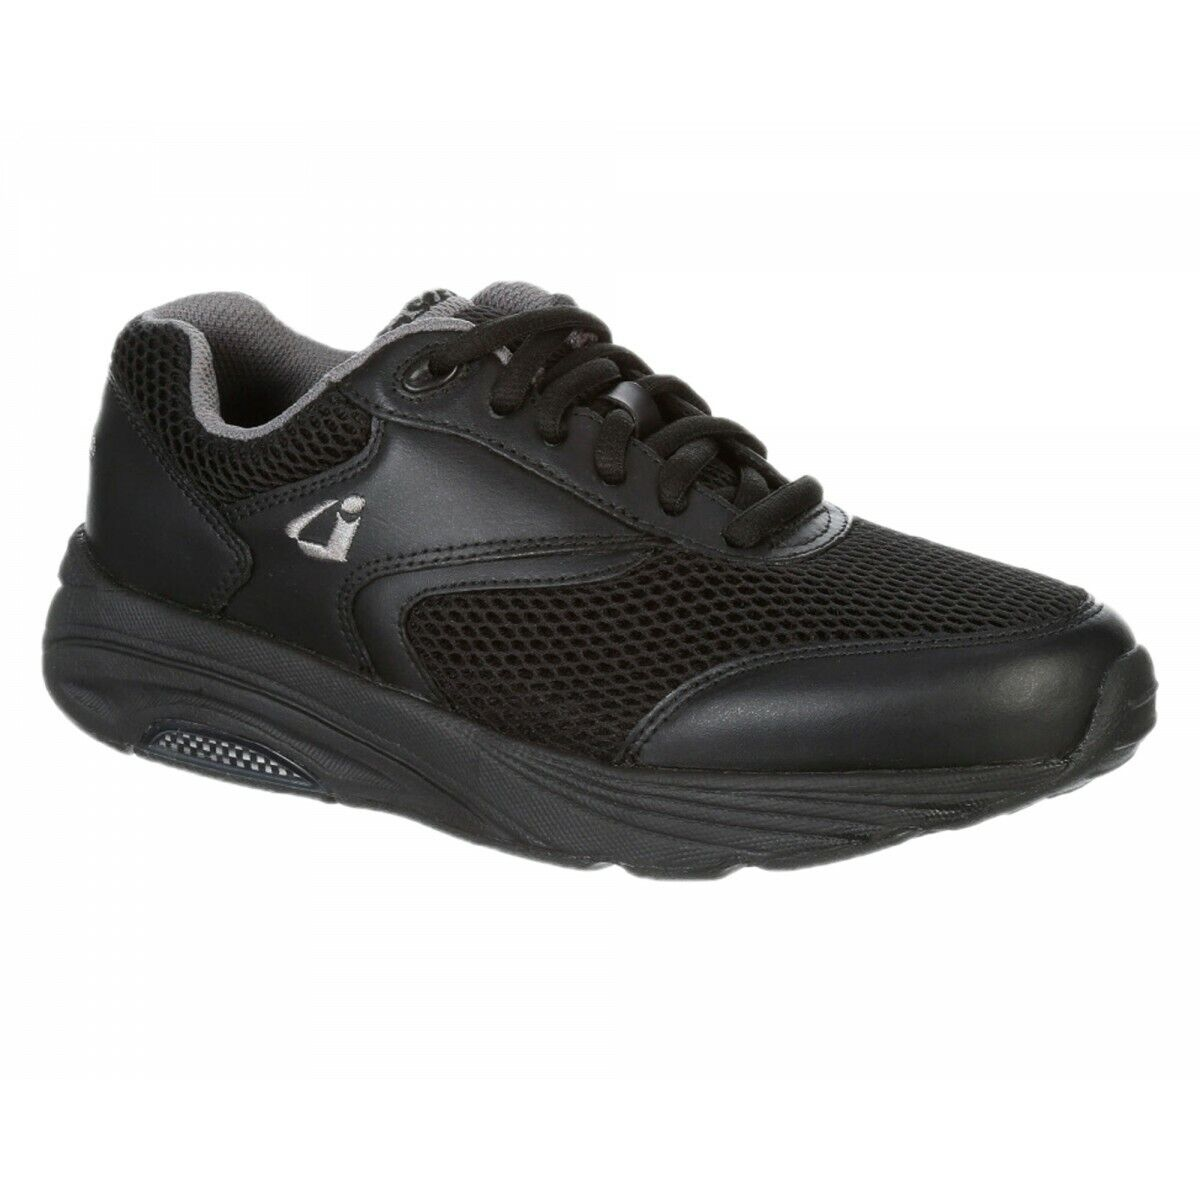 Instride Newport Stretch - Men's Mesh Orthopedic shoes - All colors - All Sizes